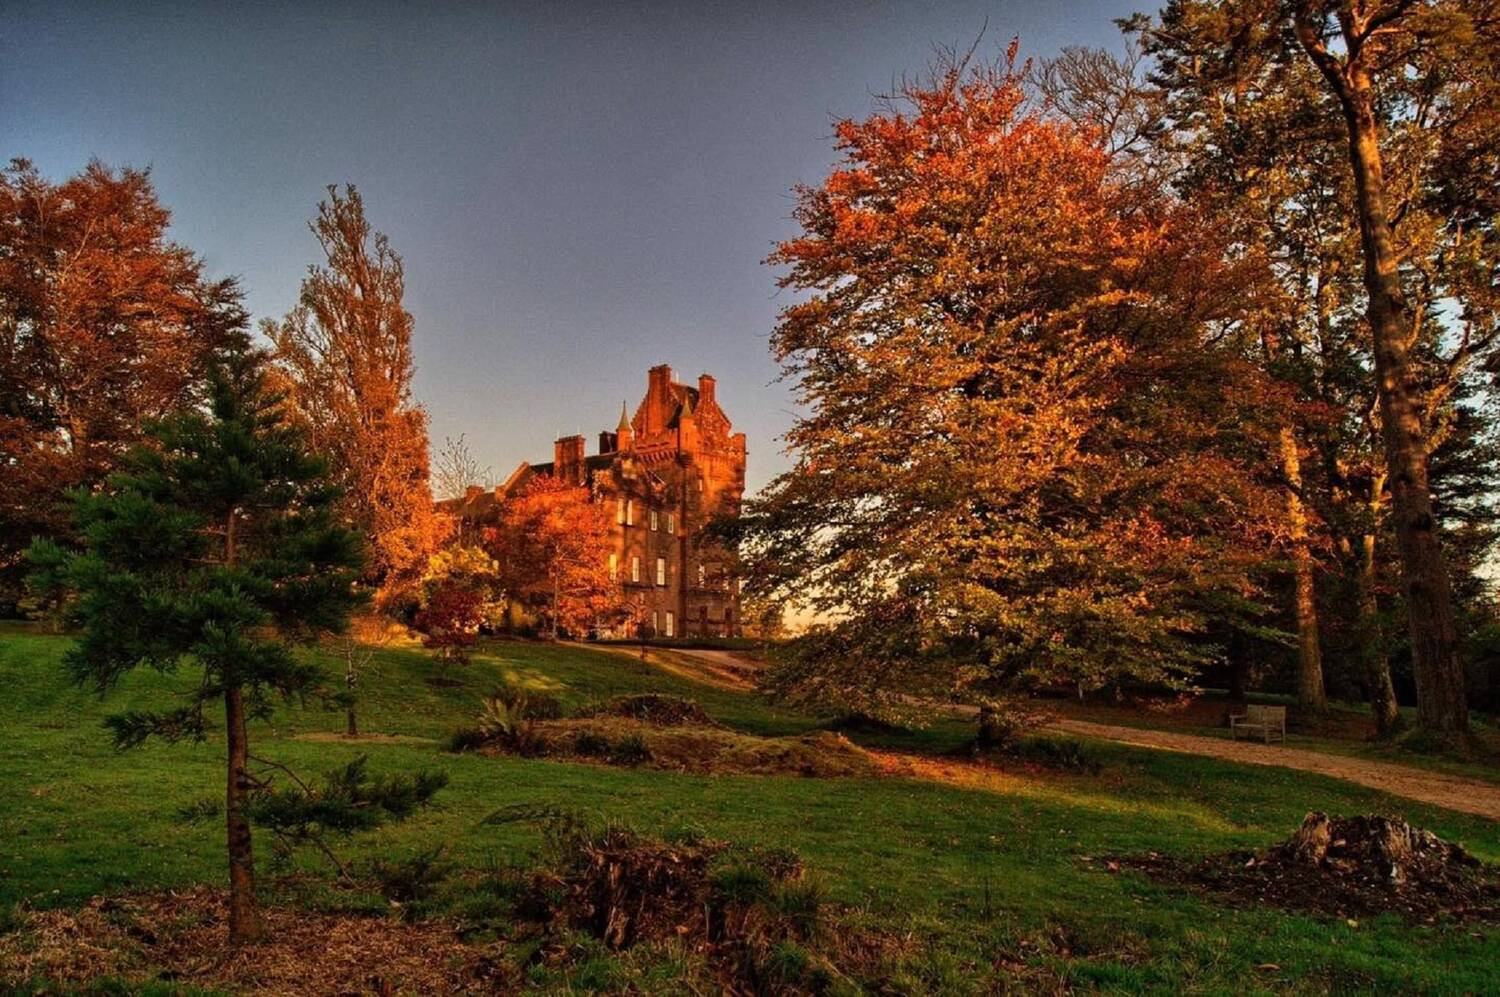 Brodick Castle is seen bathed in an orange glow from the sun, from the garden below. The tall beech trees in the foreground have glowing orange leaves.